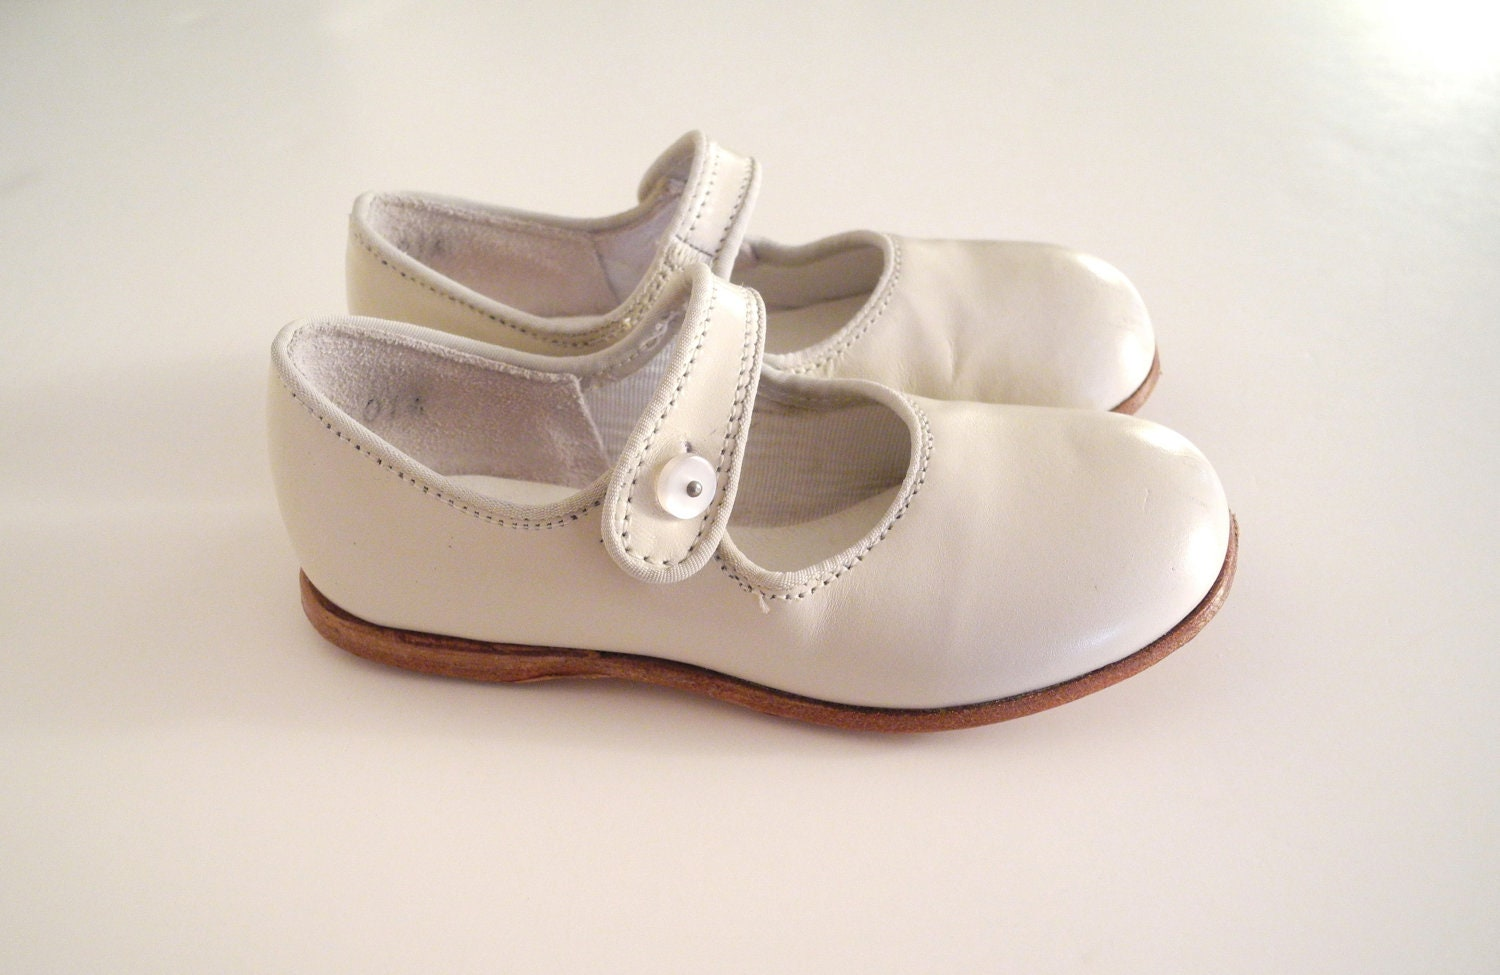 1970's Ivory Leather Mary Jane Button Shoes - BabyTweeds